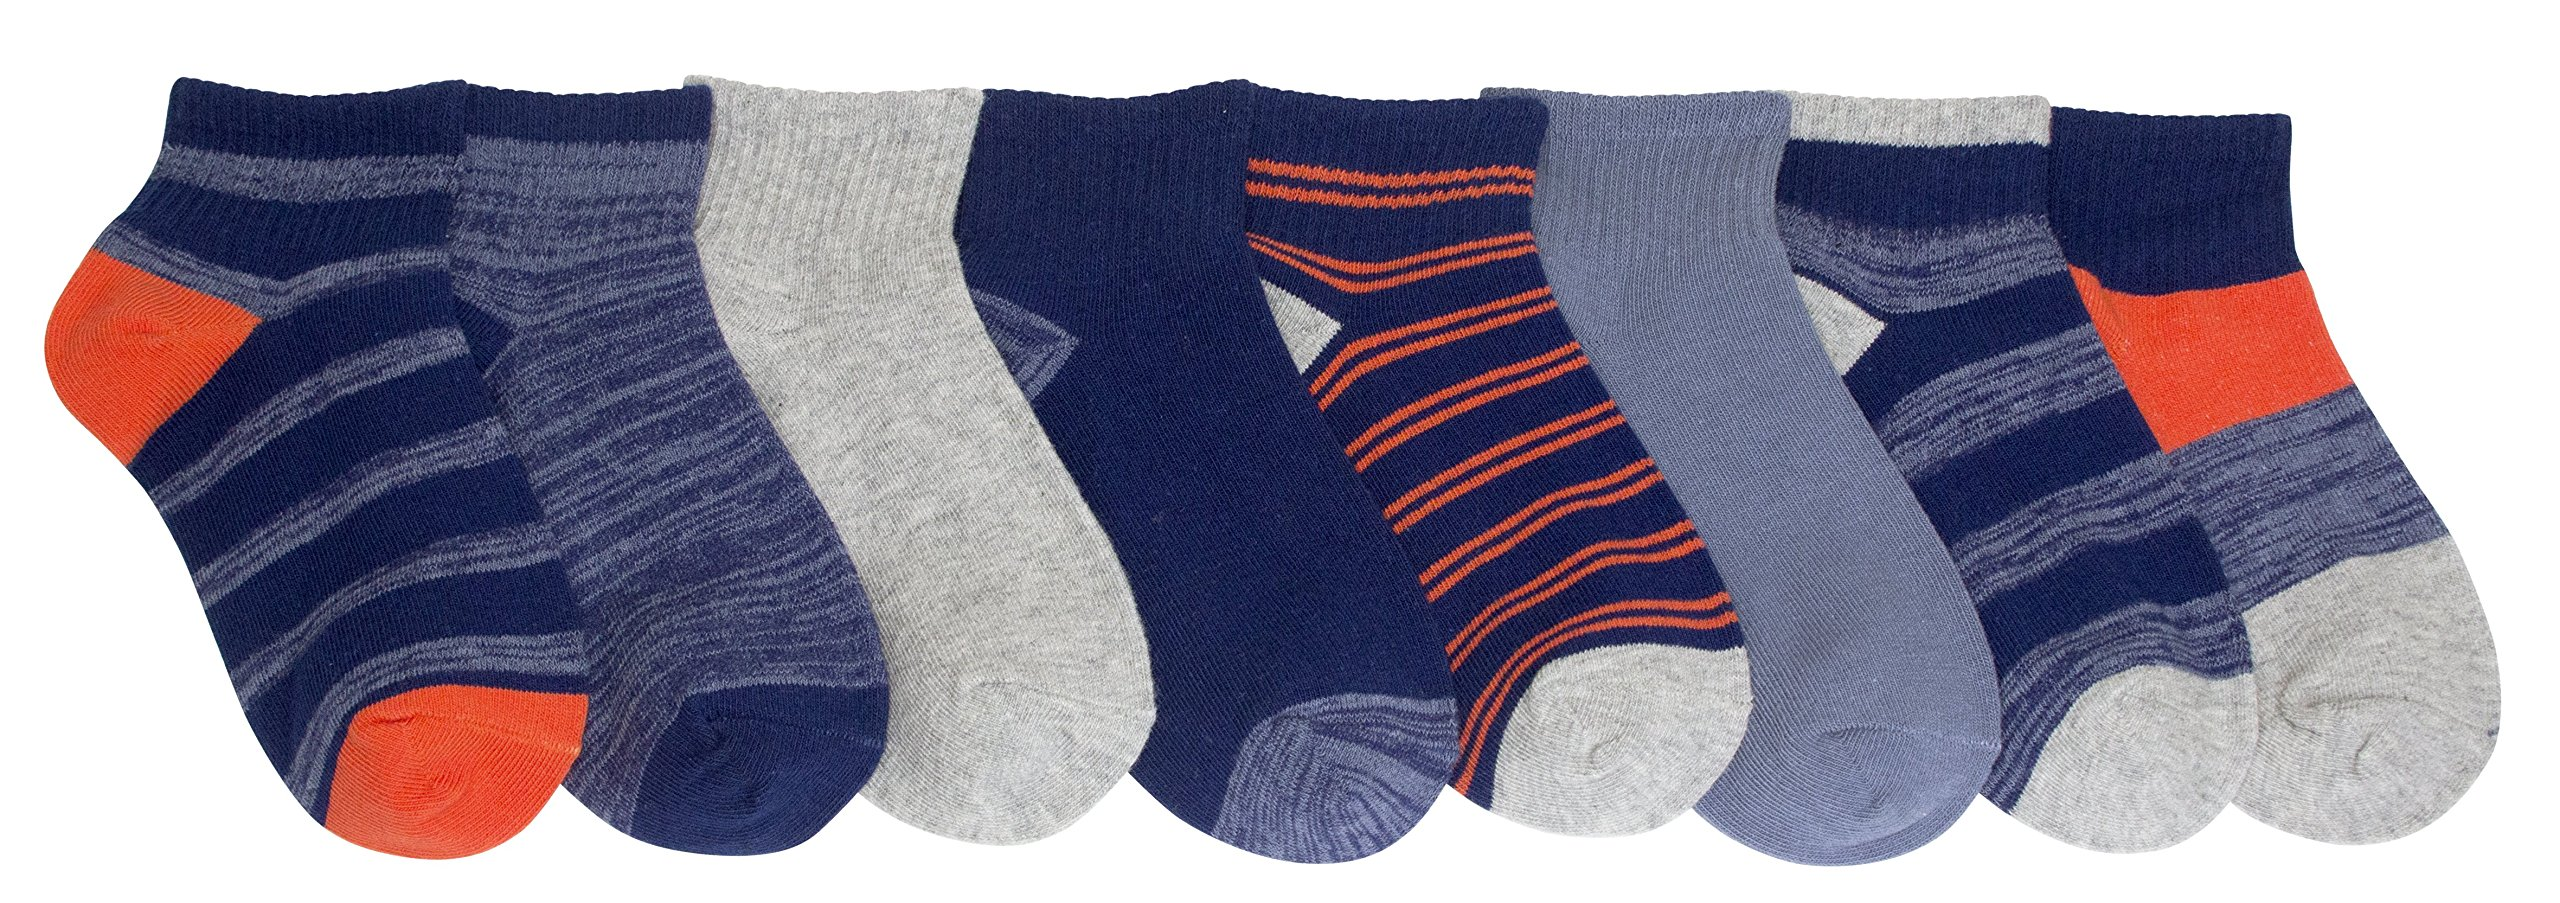 Stride Rite Toddler Boys' 8-Pack, Random Feed Quarter Length, Sock: 6-7.5 / Shoes: 7-10